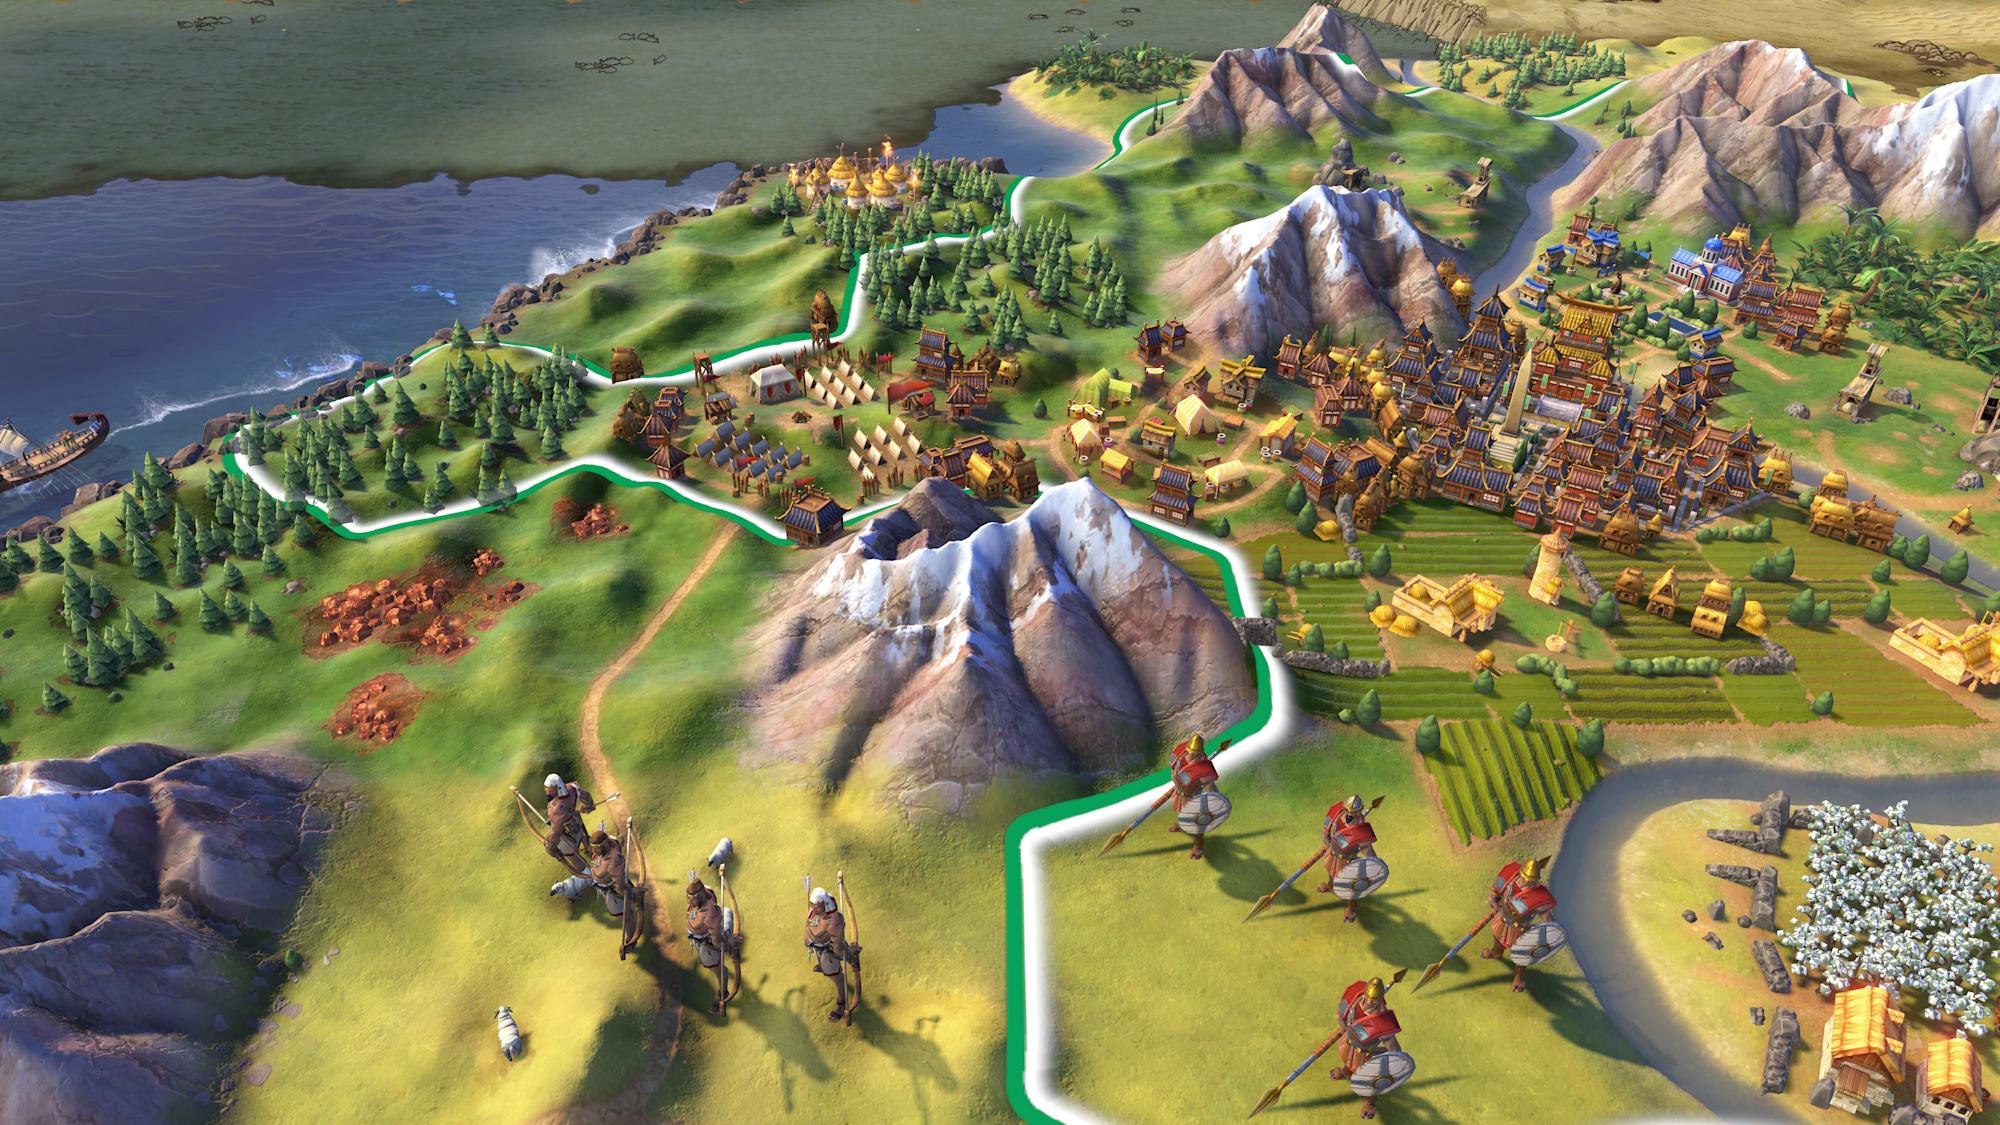 Civilization VI is this week's free game Mega Sale under way on the Epic Games Store - Engadget 日本版